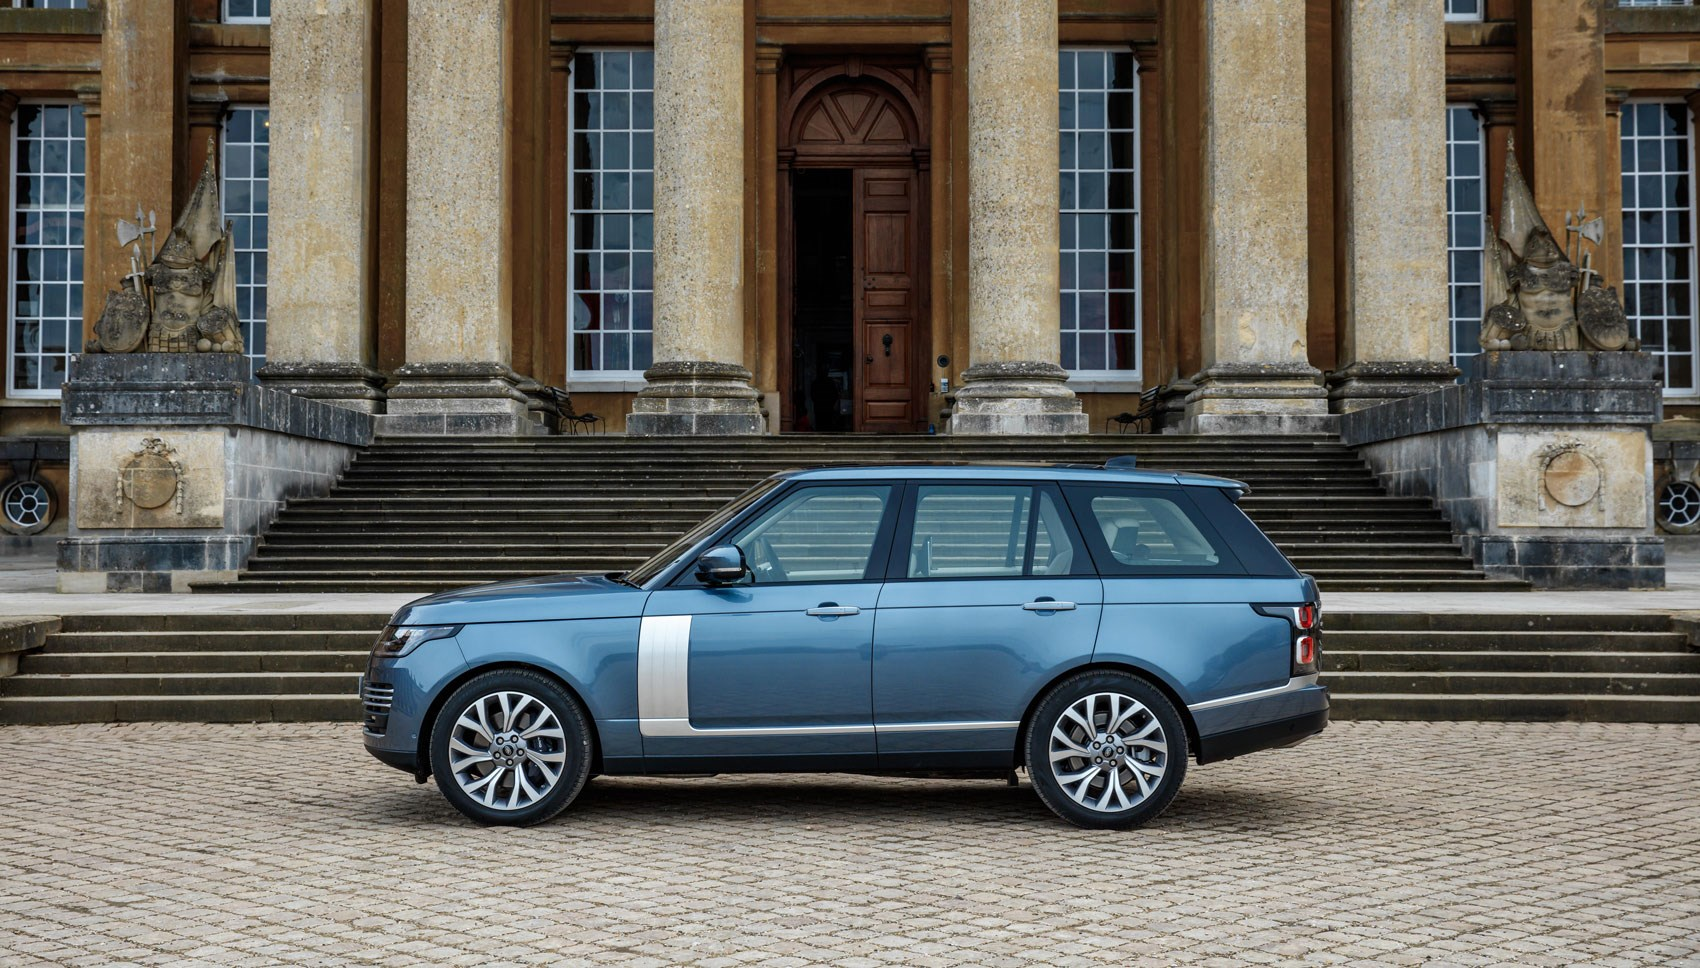 But Yes This Is A Four Cylinder Range Rover Albeit One With Figures That Put It Ahead Of Both Sels On And Between Them Torque